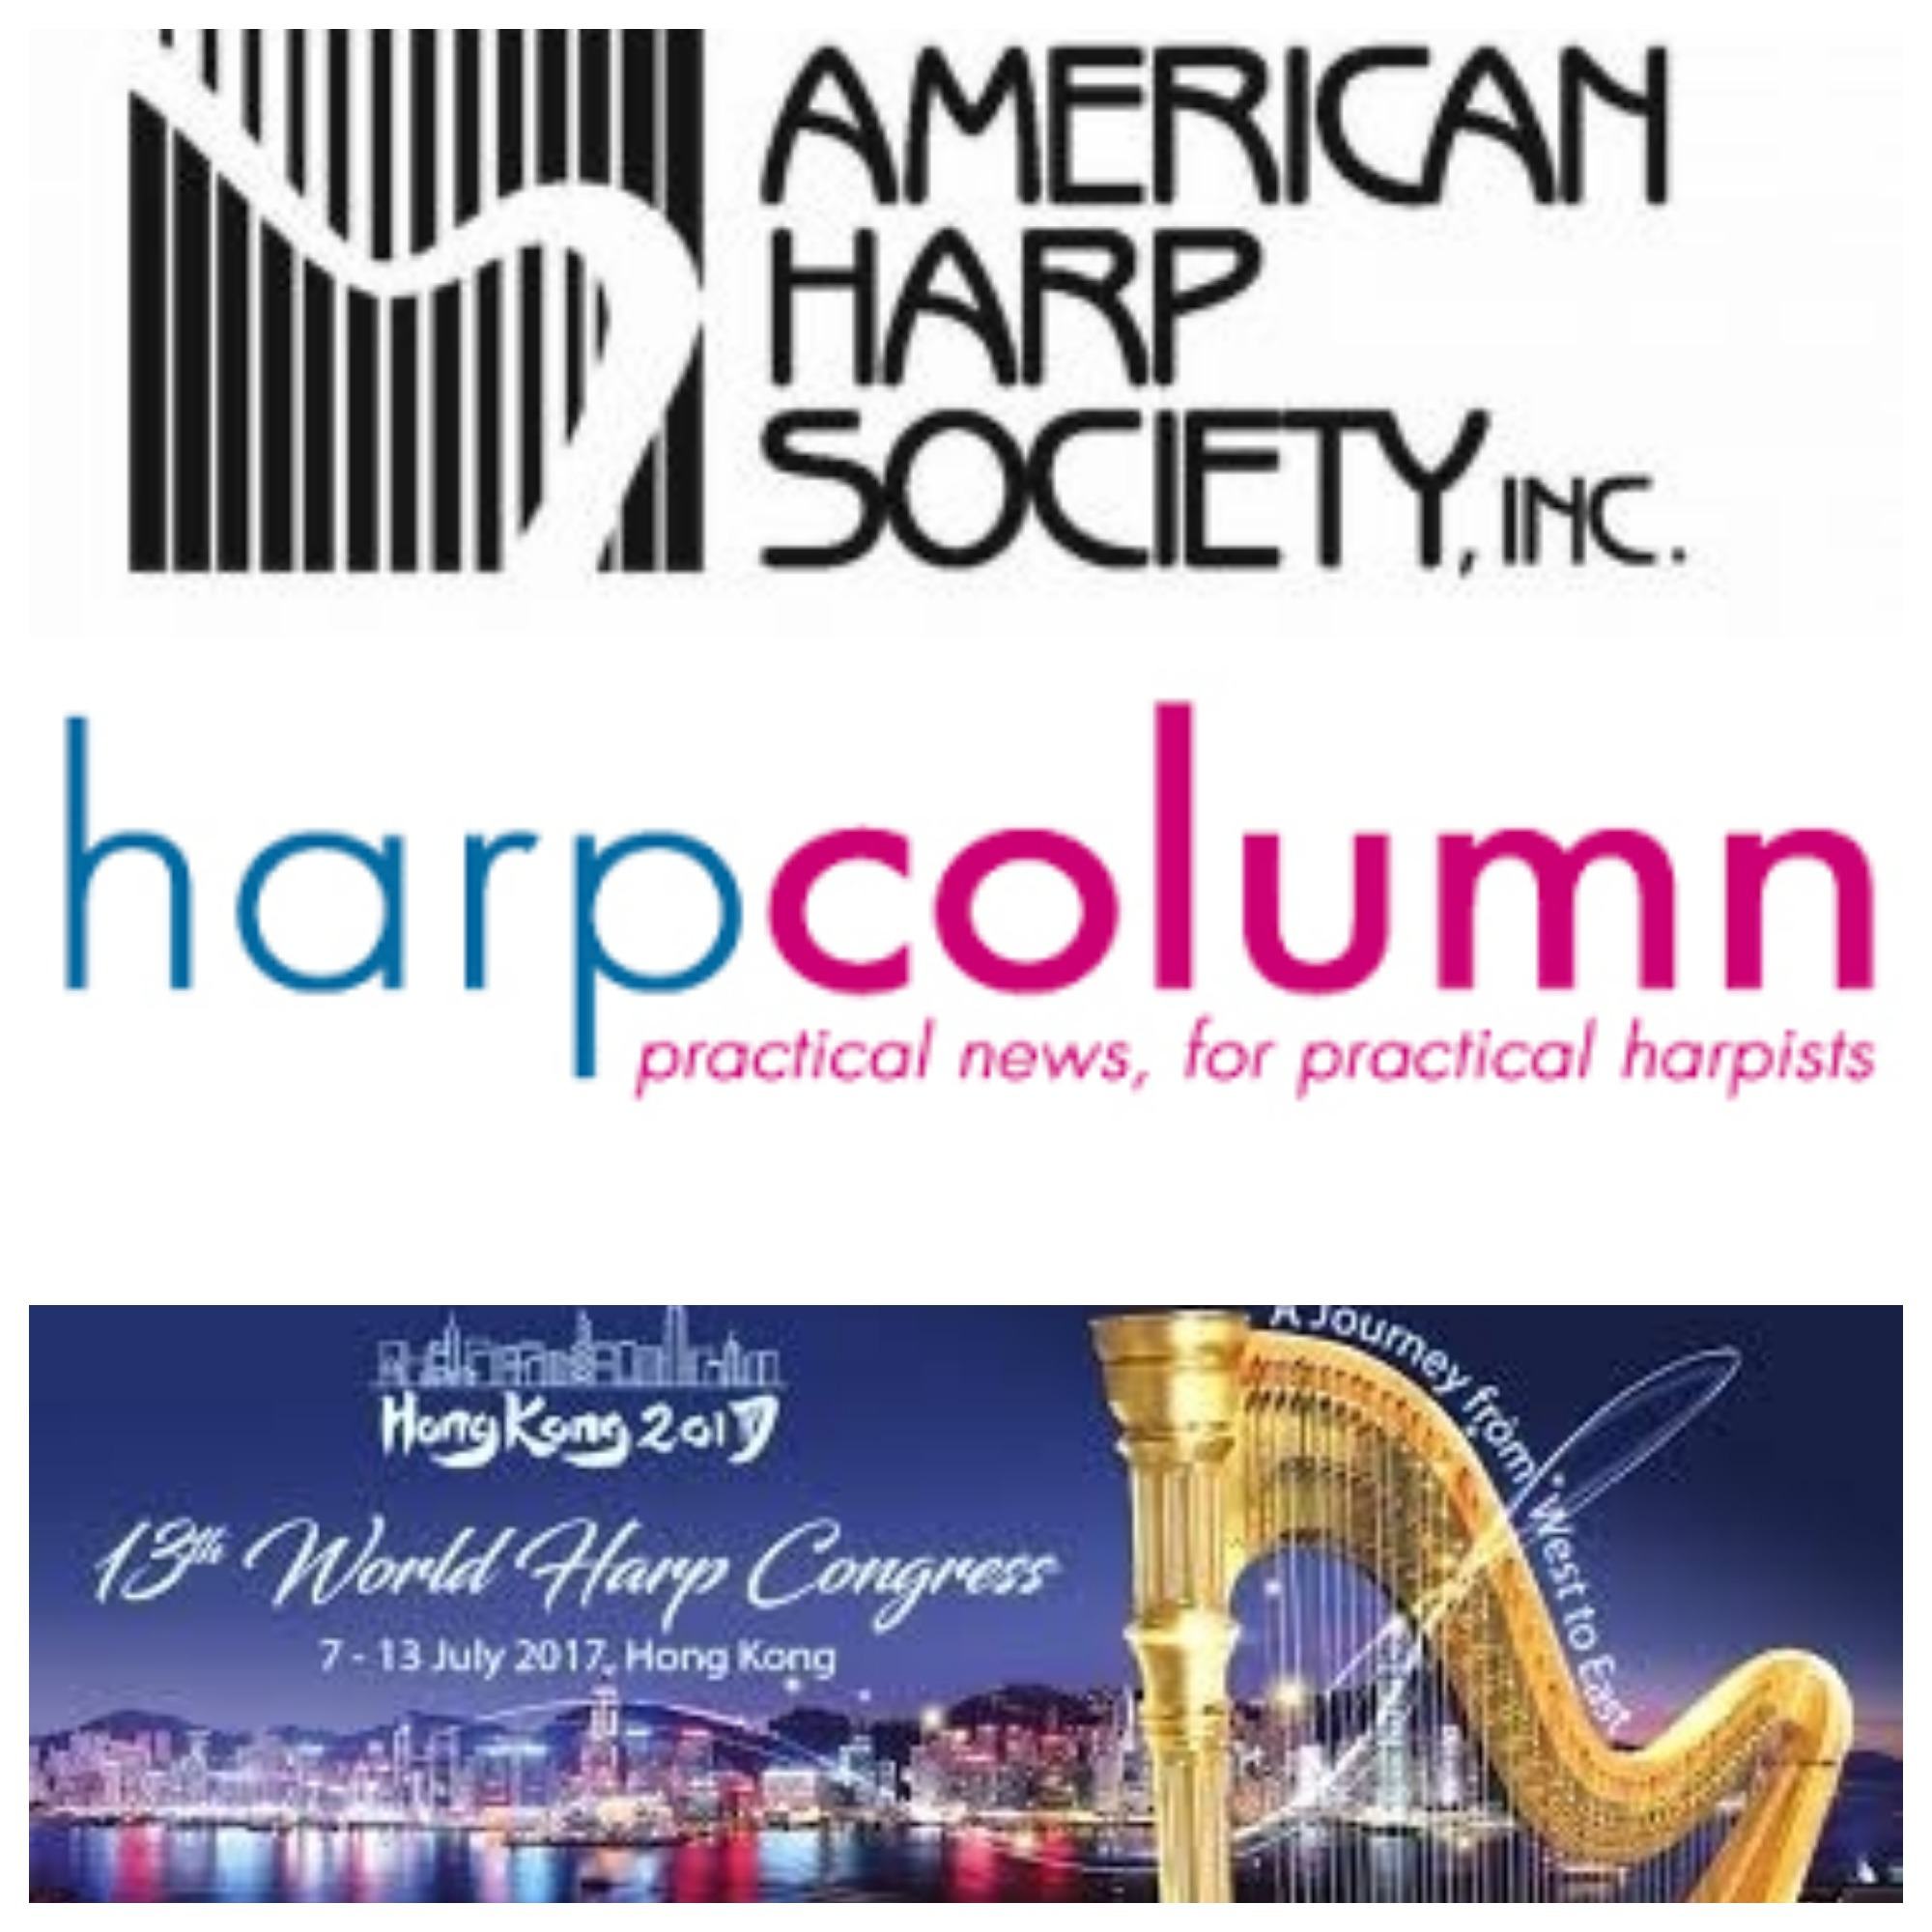 Subcribe or join these harp organizations for helpful harp news and tips